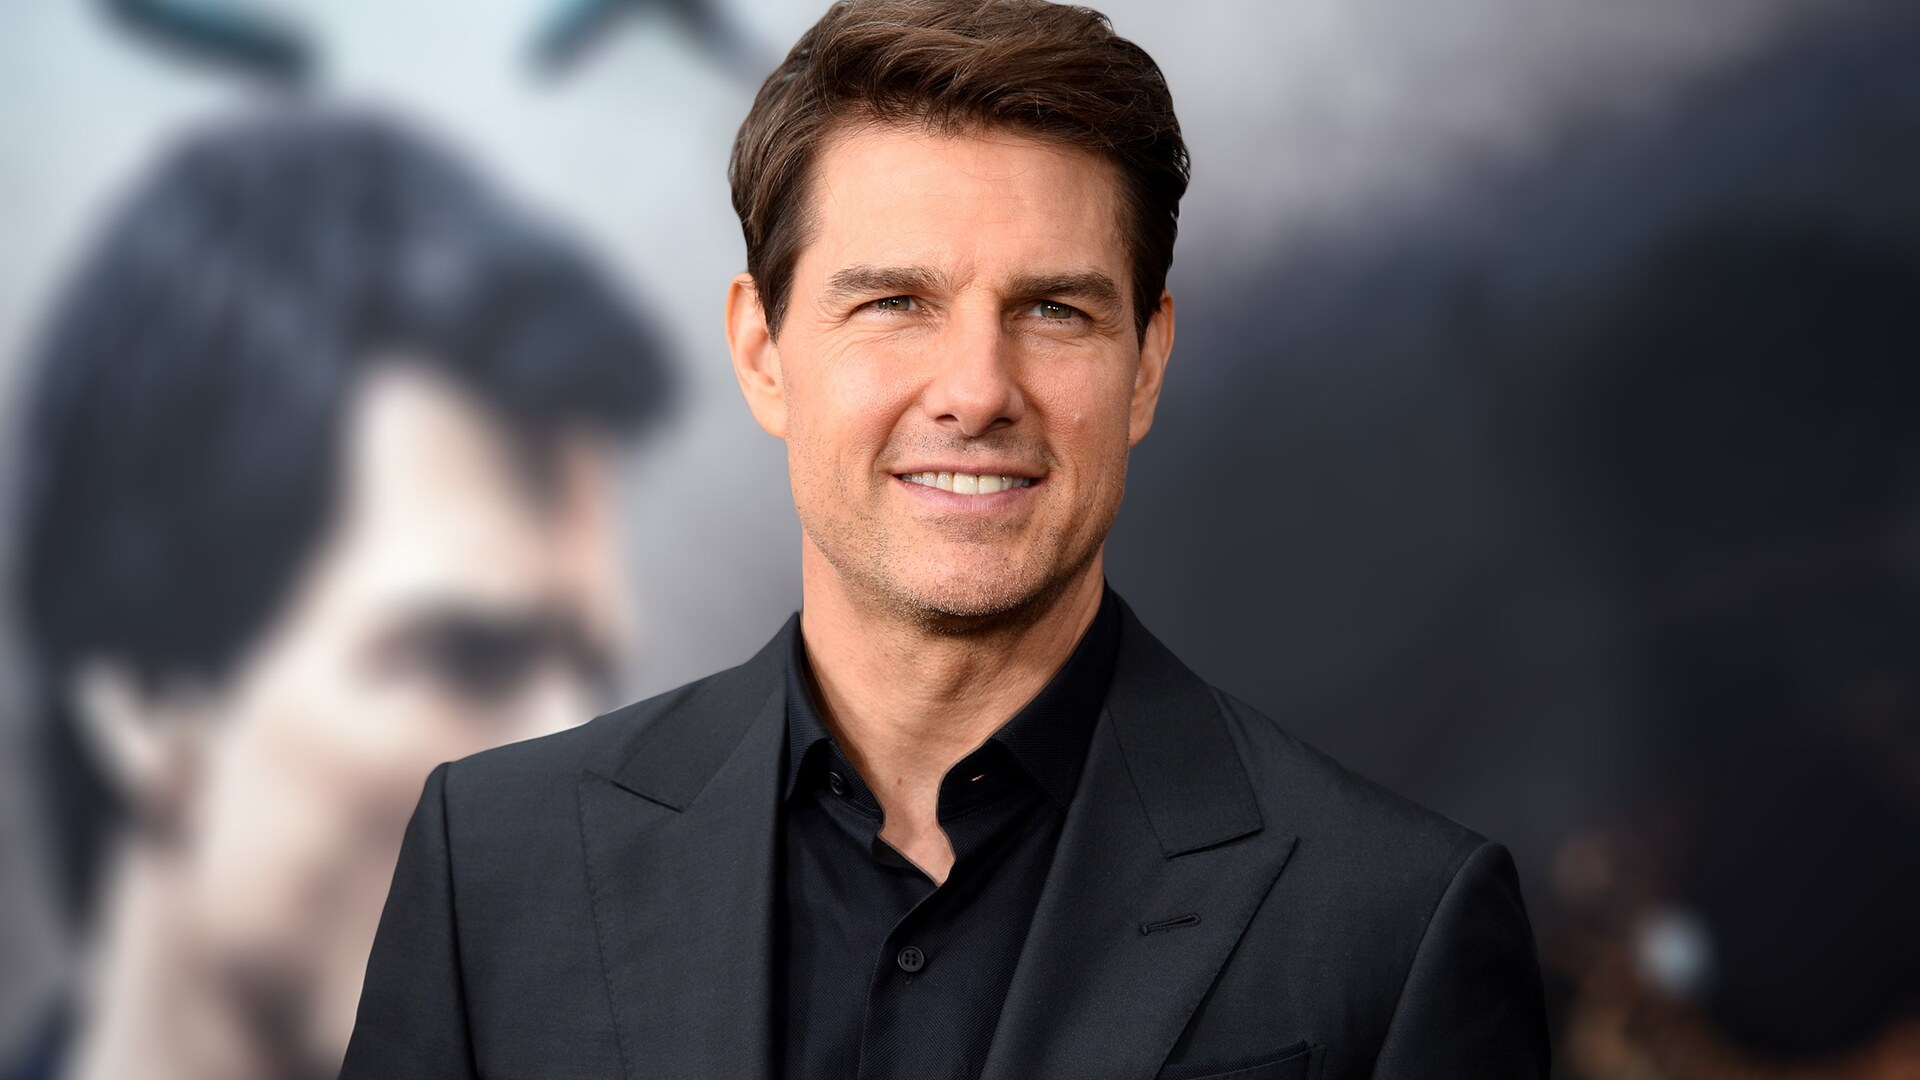 1920x1080 Tom Cruise 2018 Laptop Full Hd 1080p Hd 4k Wallpapers